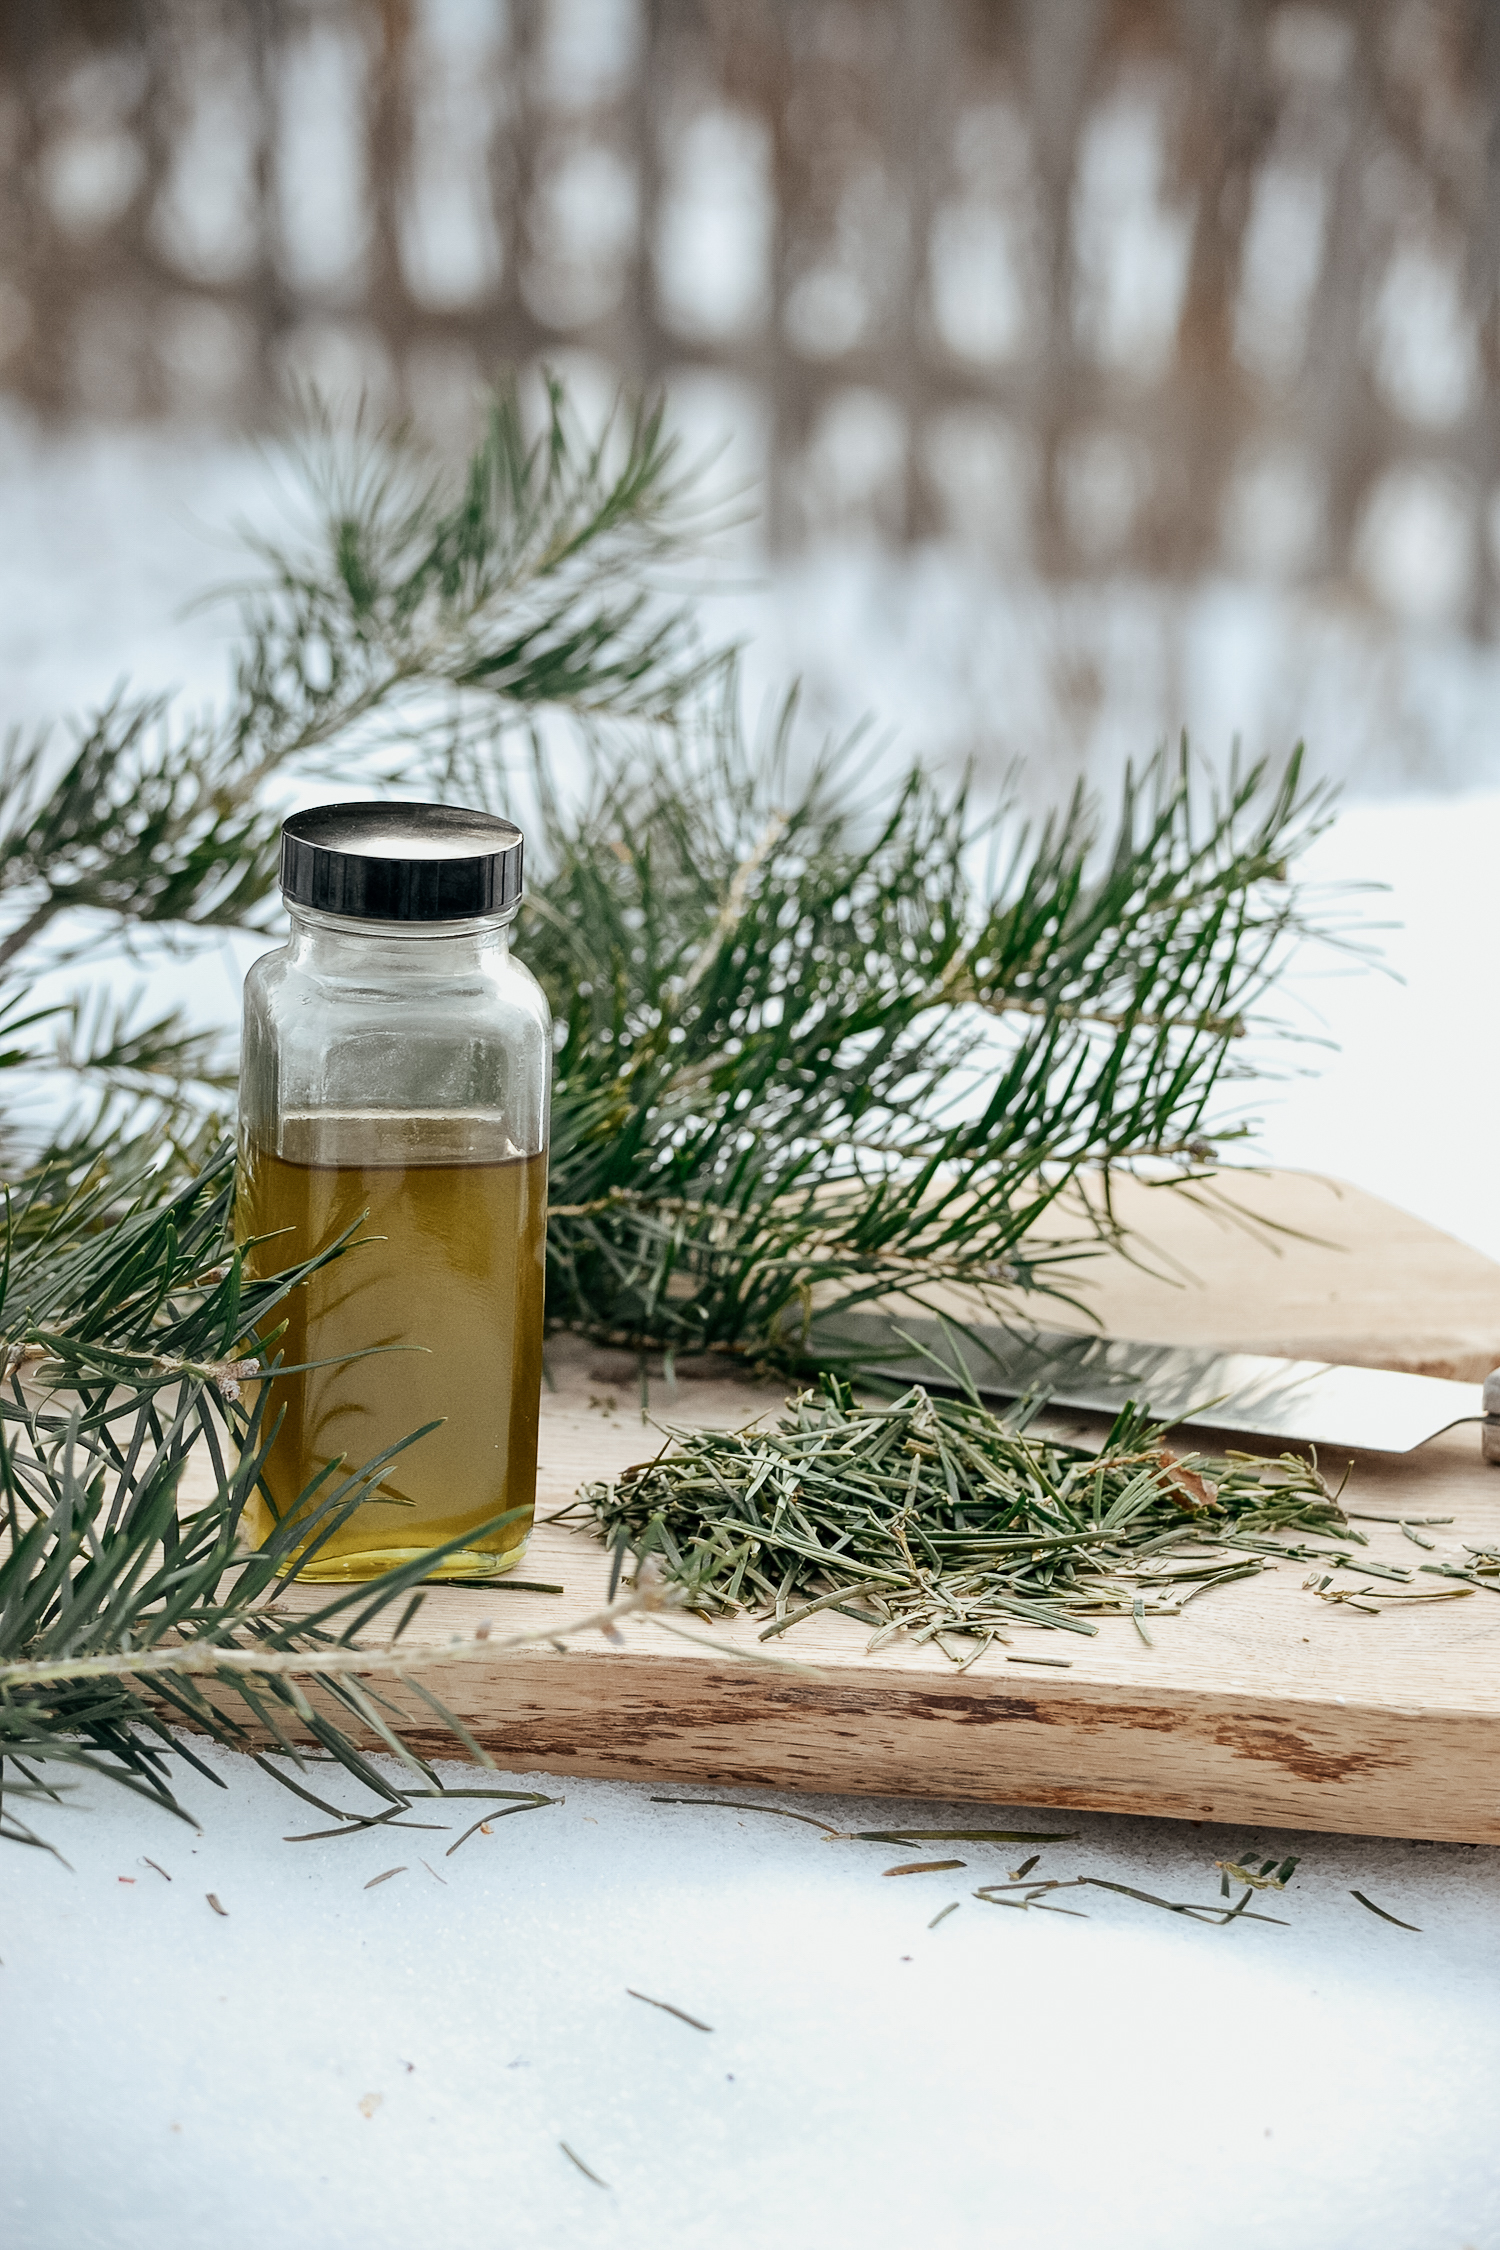 Infused Oil Preparation - Introductory Herbal Course